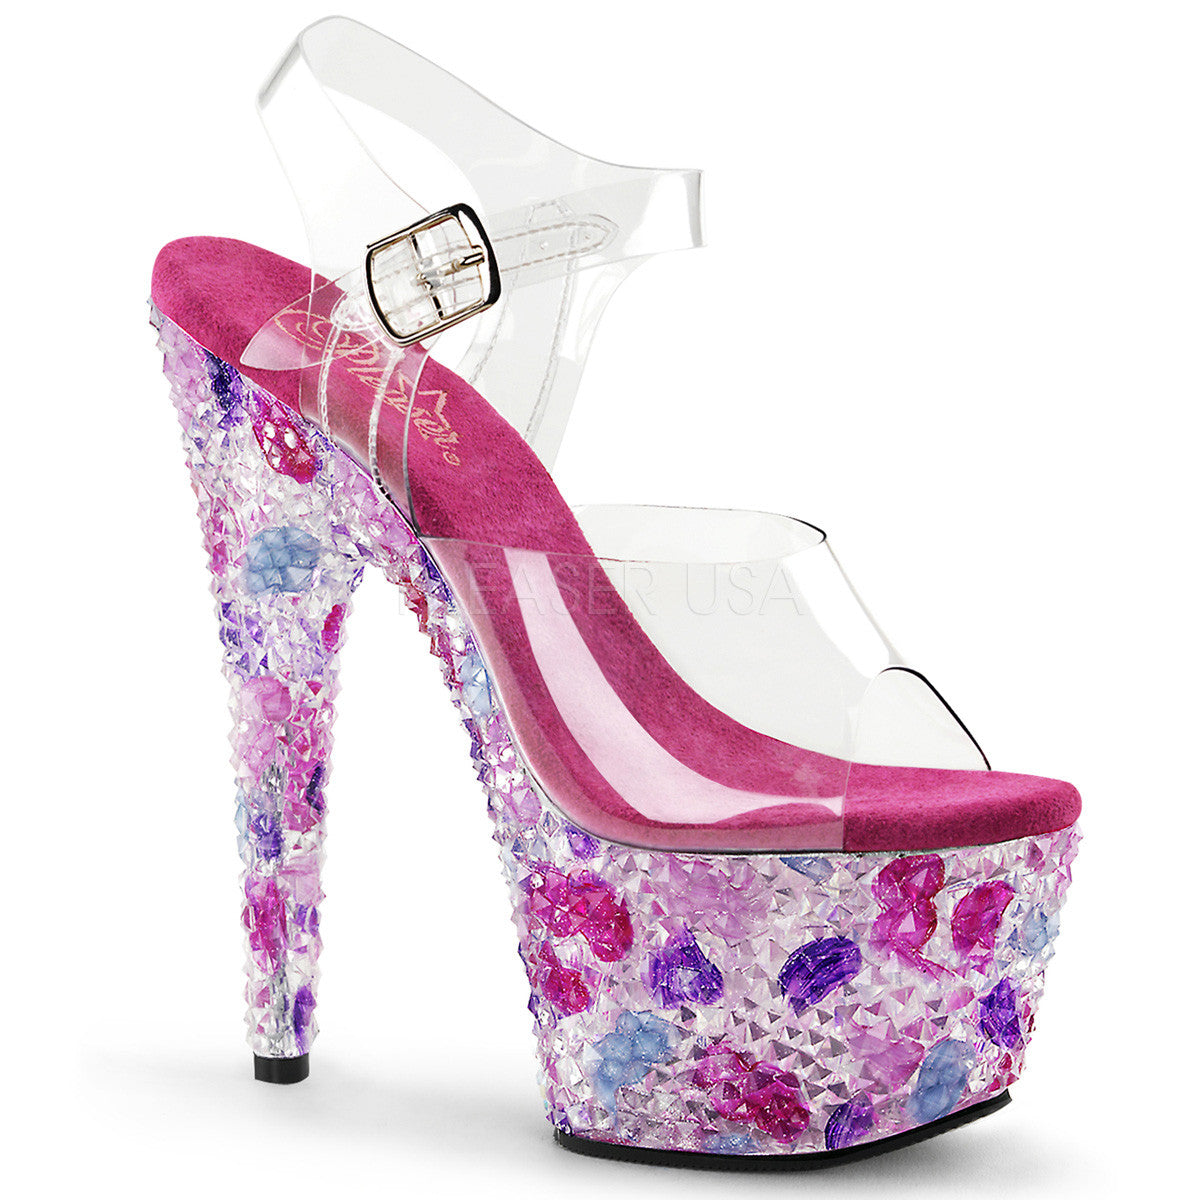 PLEASER CRYSTALIZE-708 Clear-Pink Multi Ankle Strap Sandals - Shoecup.com - 1